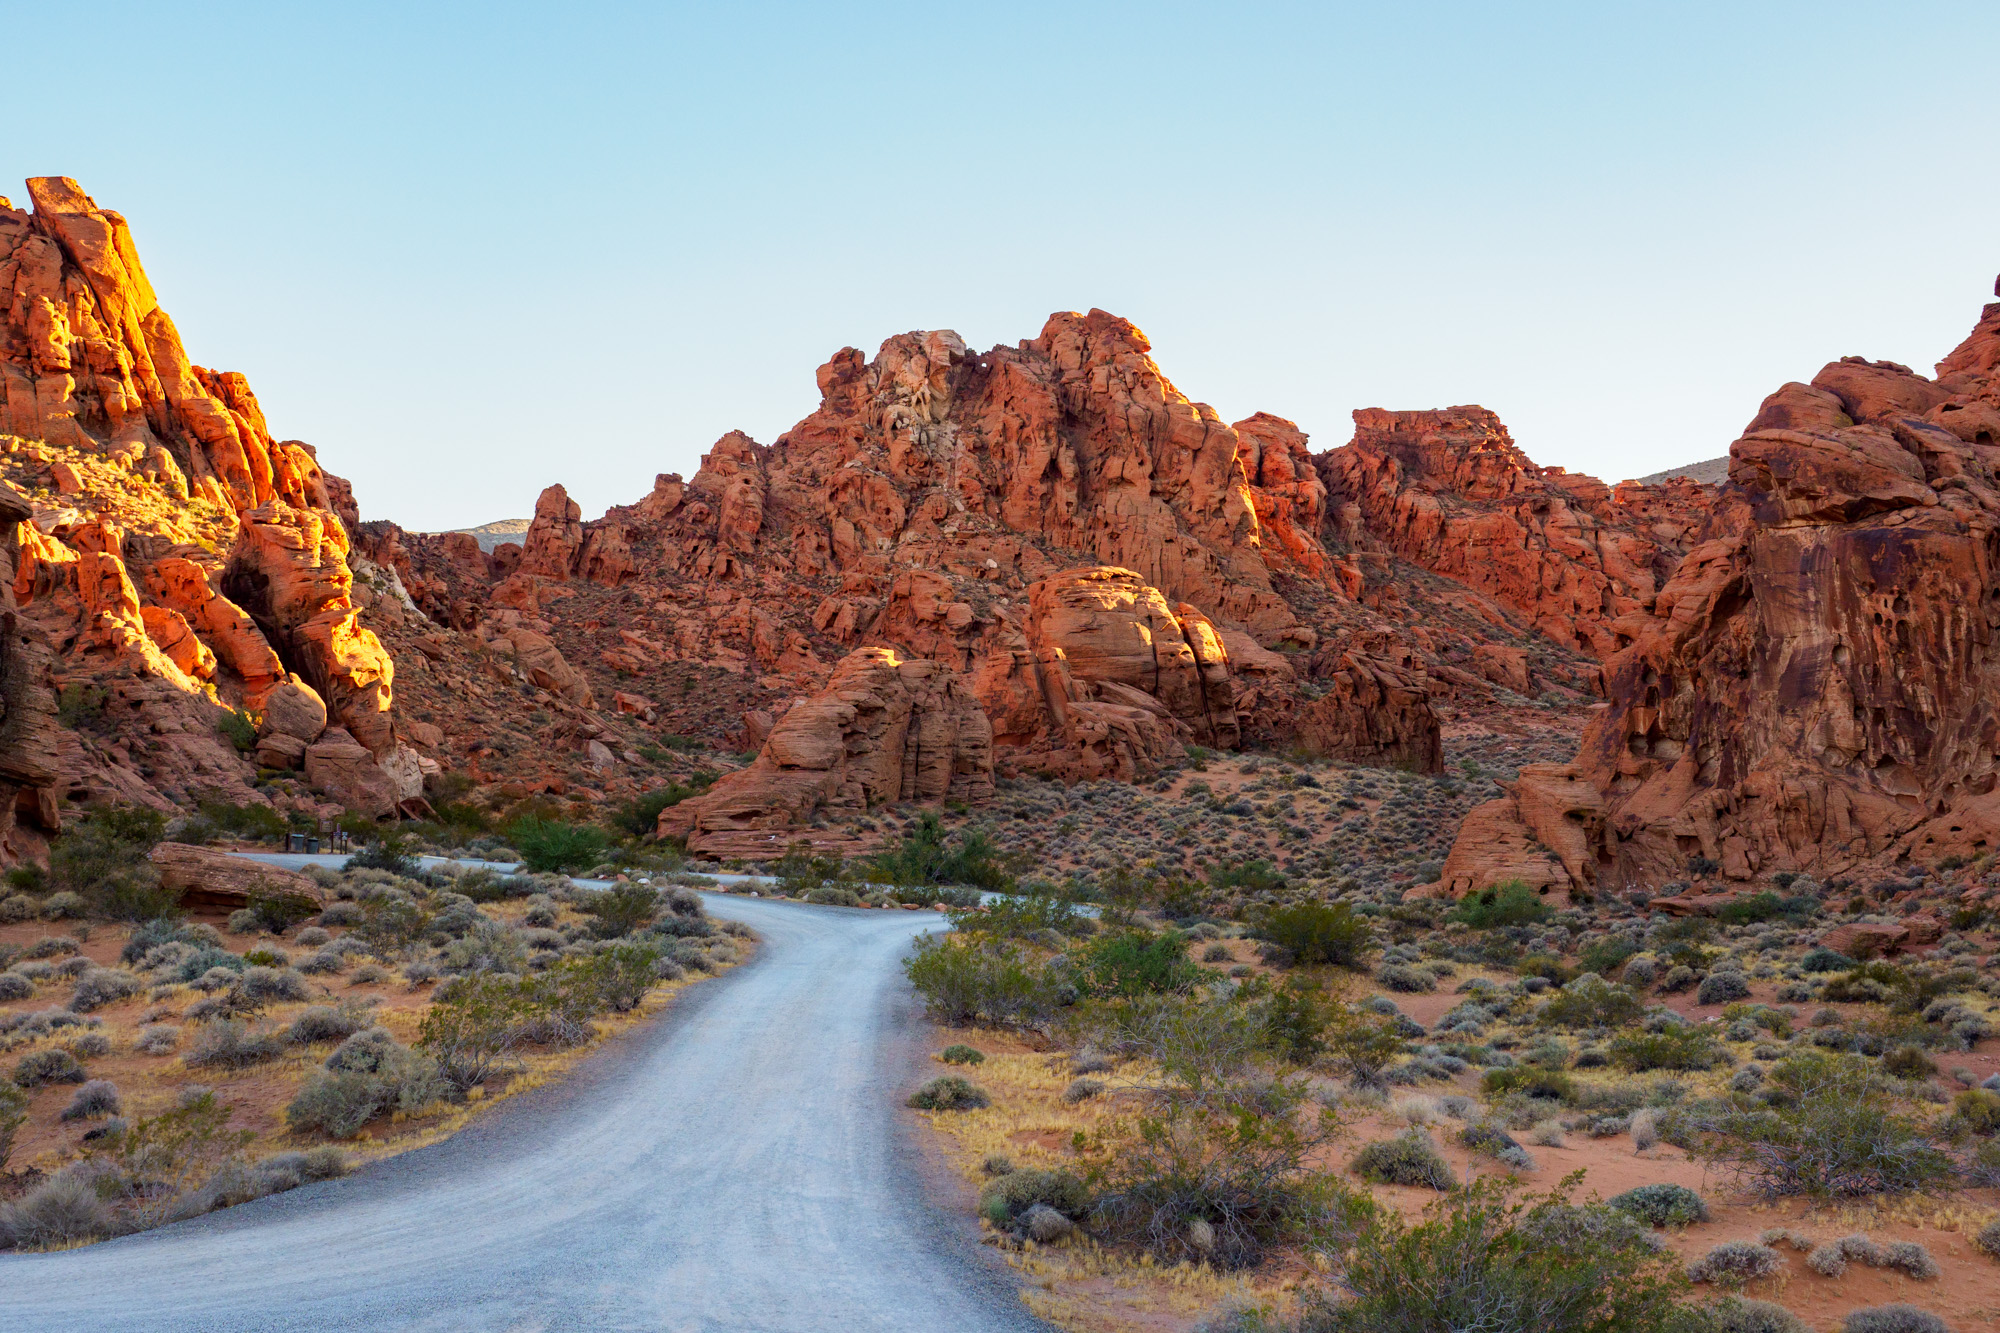 Valley of Fire State Park - Atlatl Rock Campground